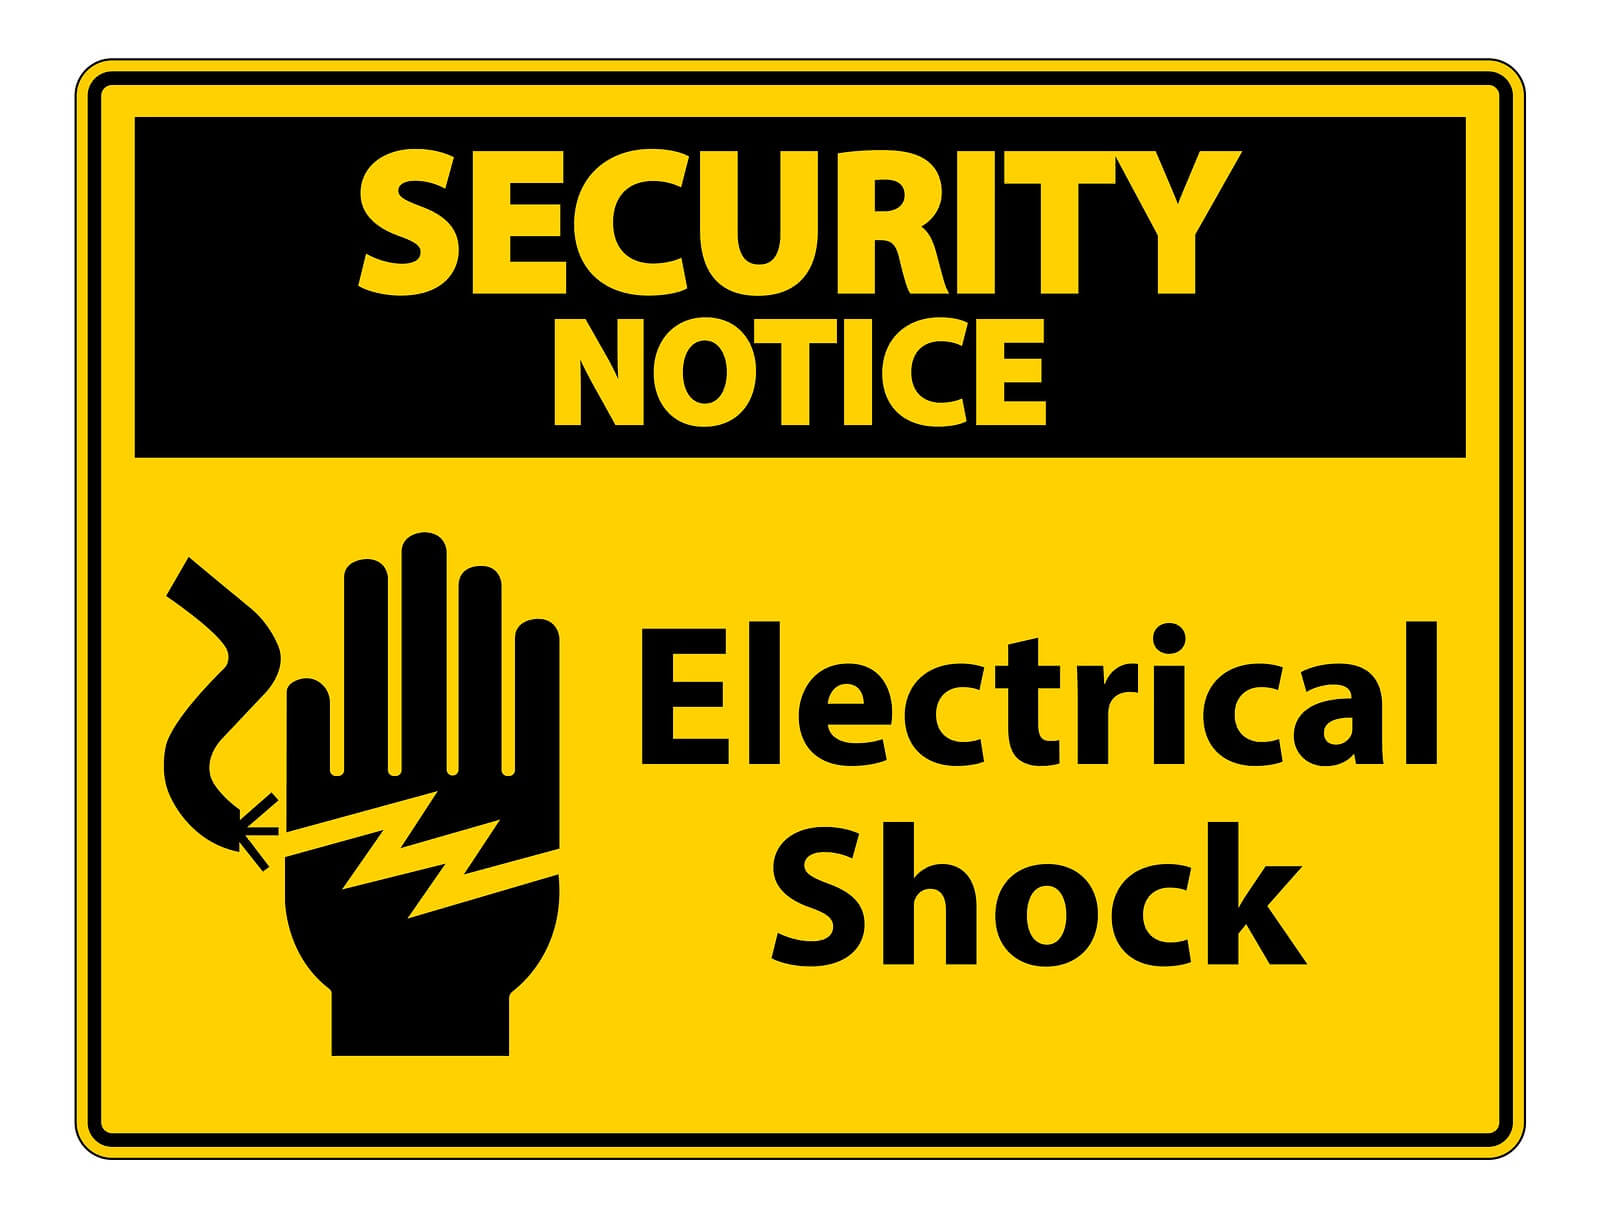 lawsuit for electrocution injuries